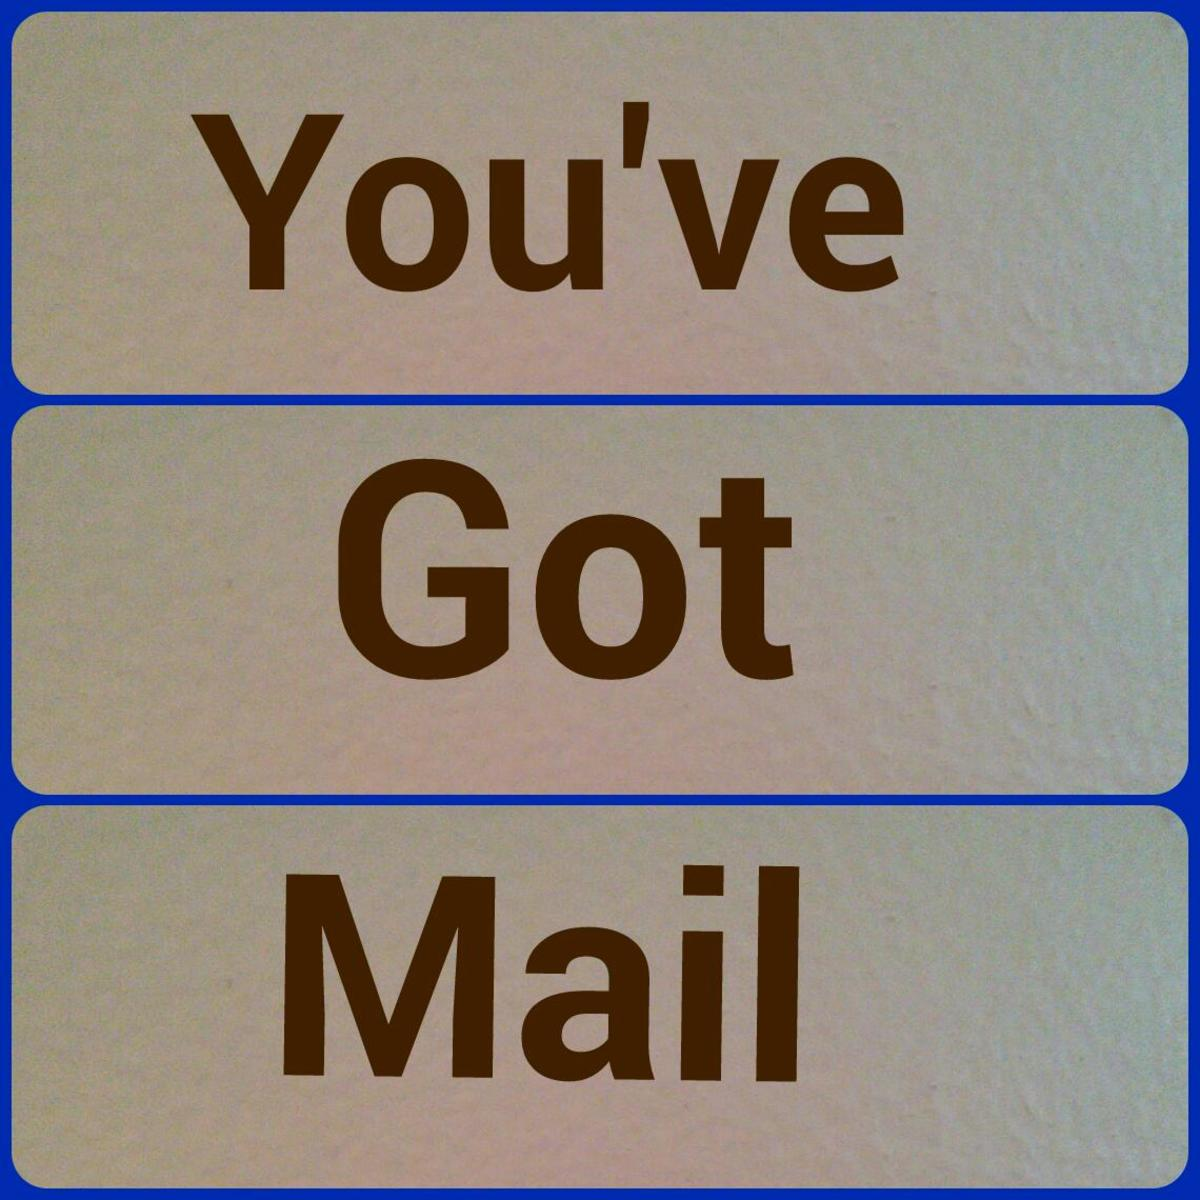 How to Check Mail in Order and Chaos | HubPages